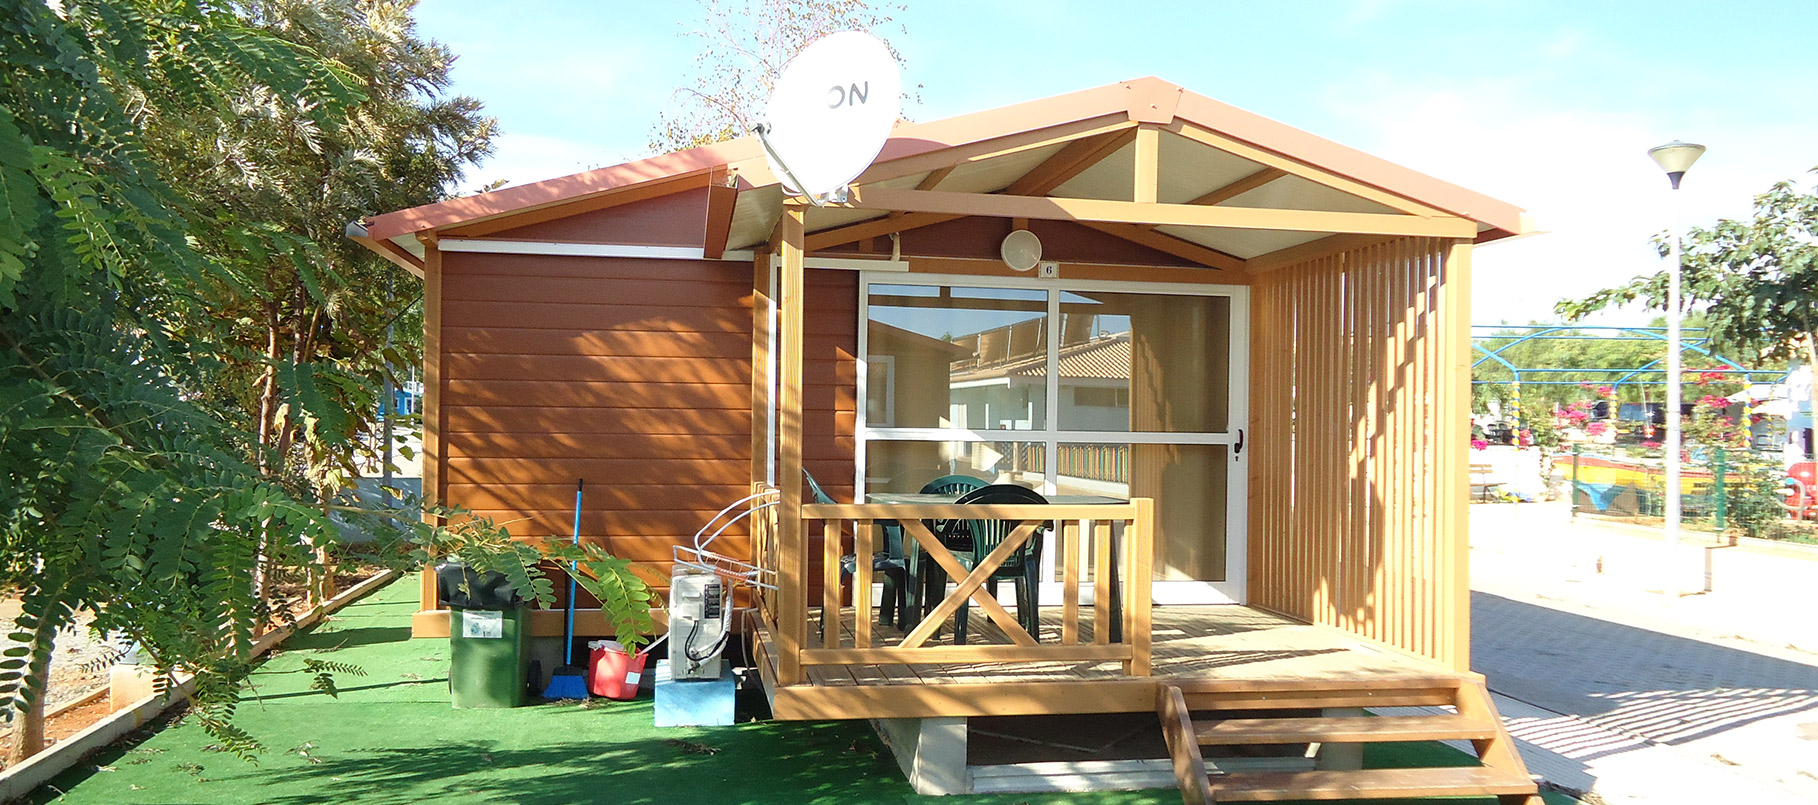 Campismo Ria Formosa - campsite with Bungalows in Algarve